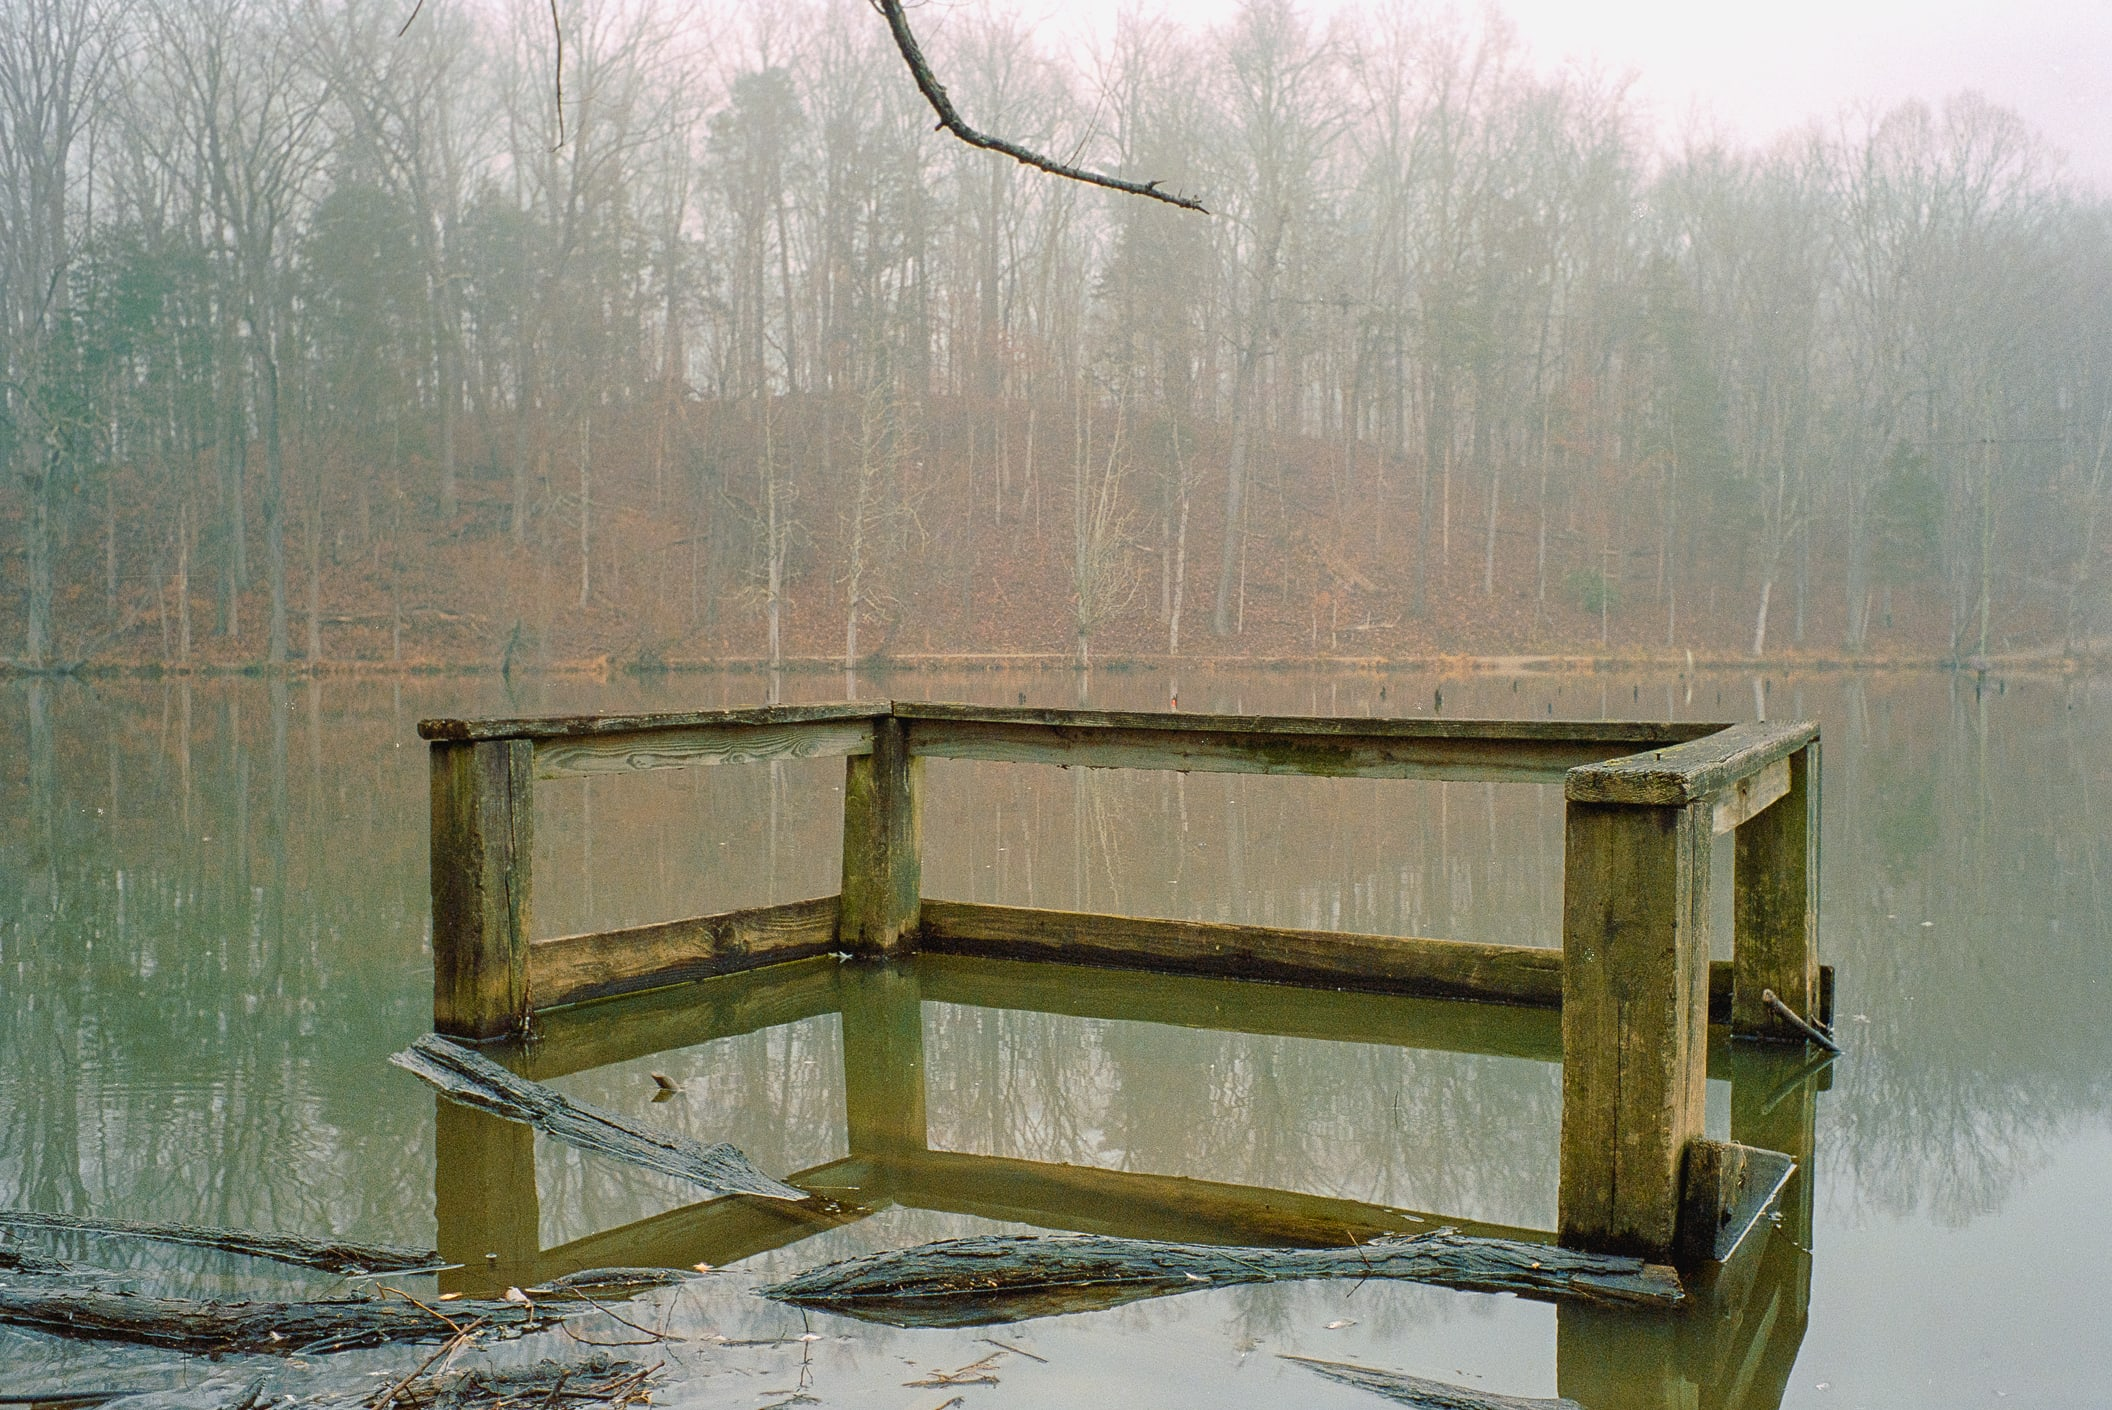 small dock half under murky water in fog